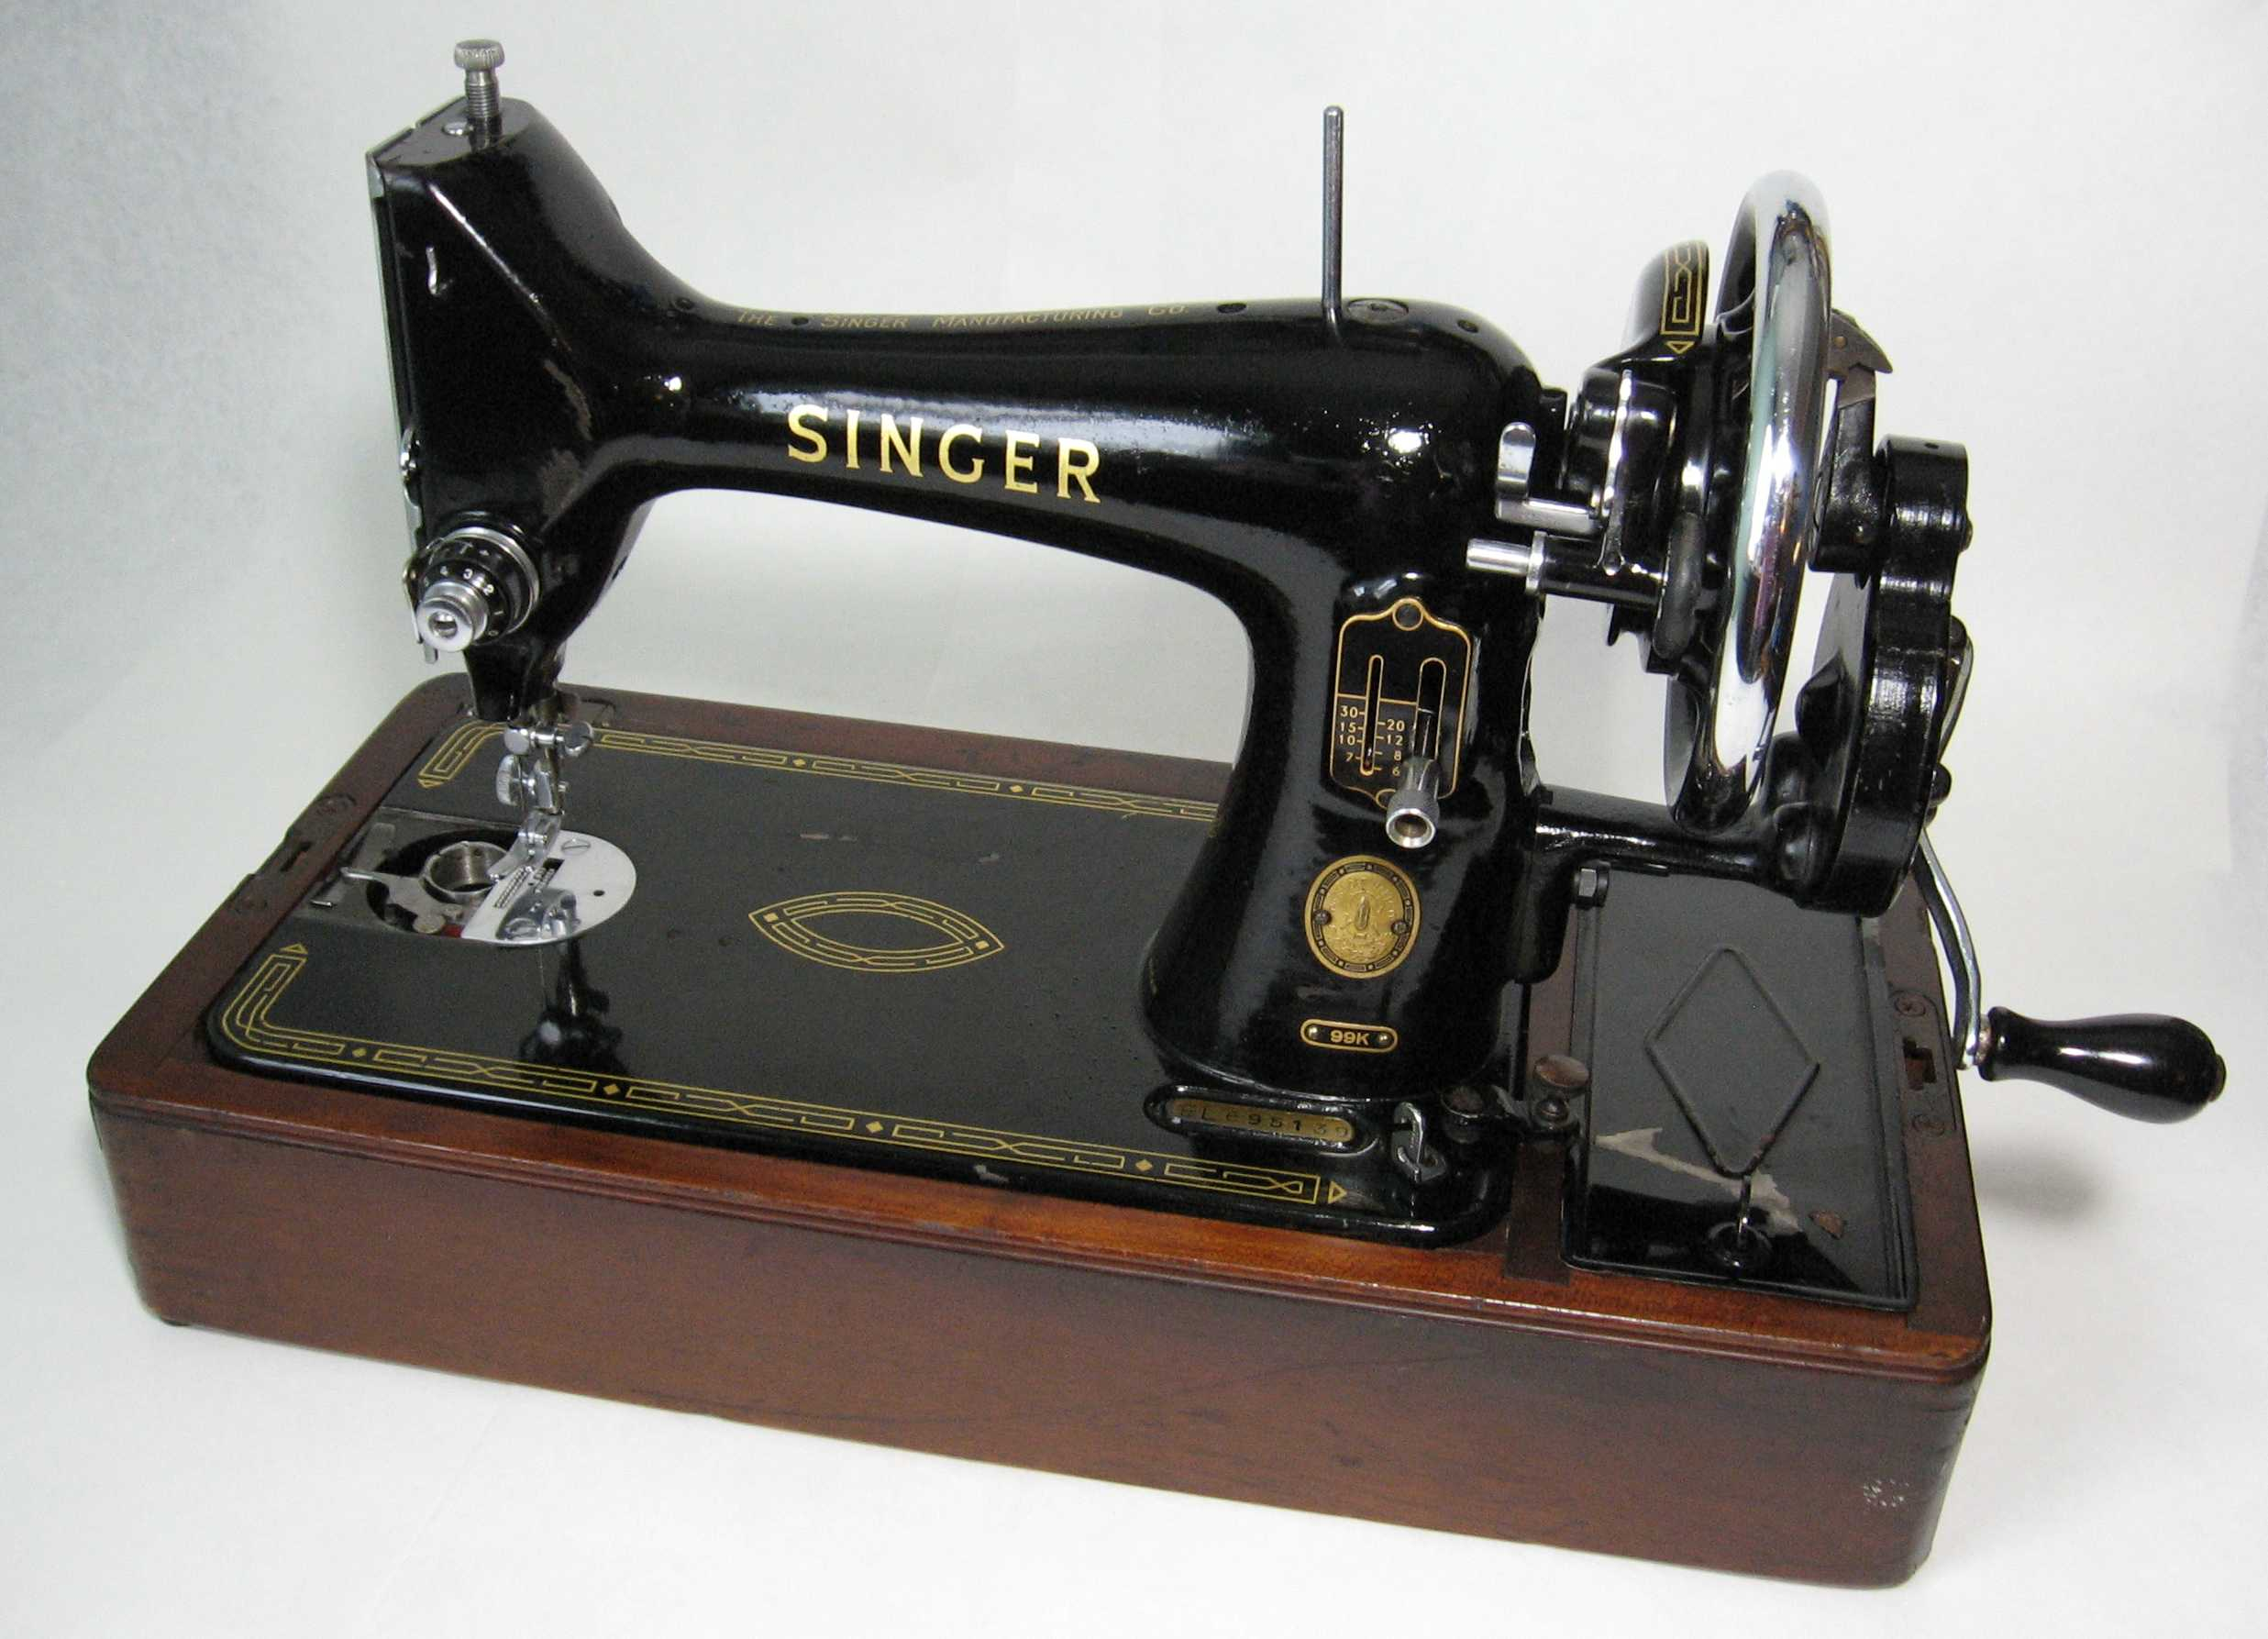 The little sewing machine that could grow your own clothes for Decor 99 sewing machine